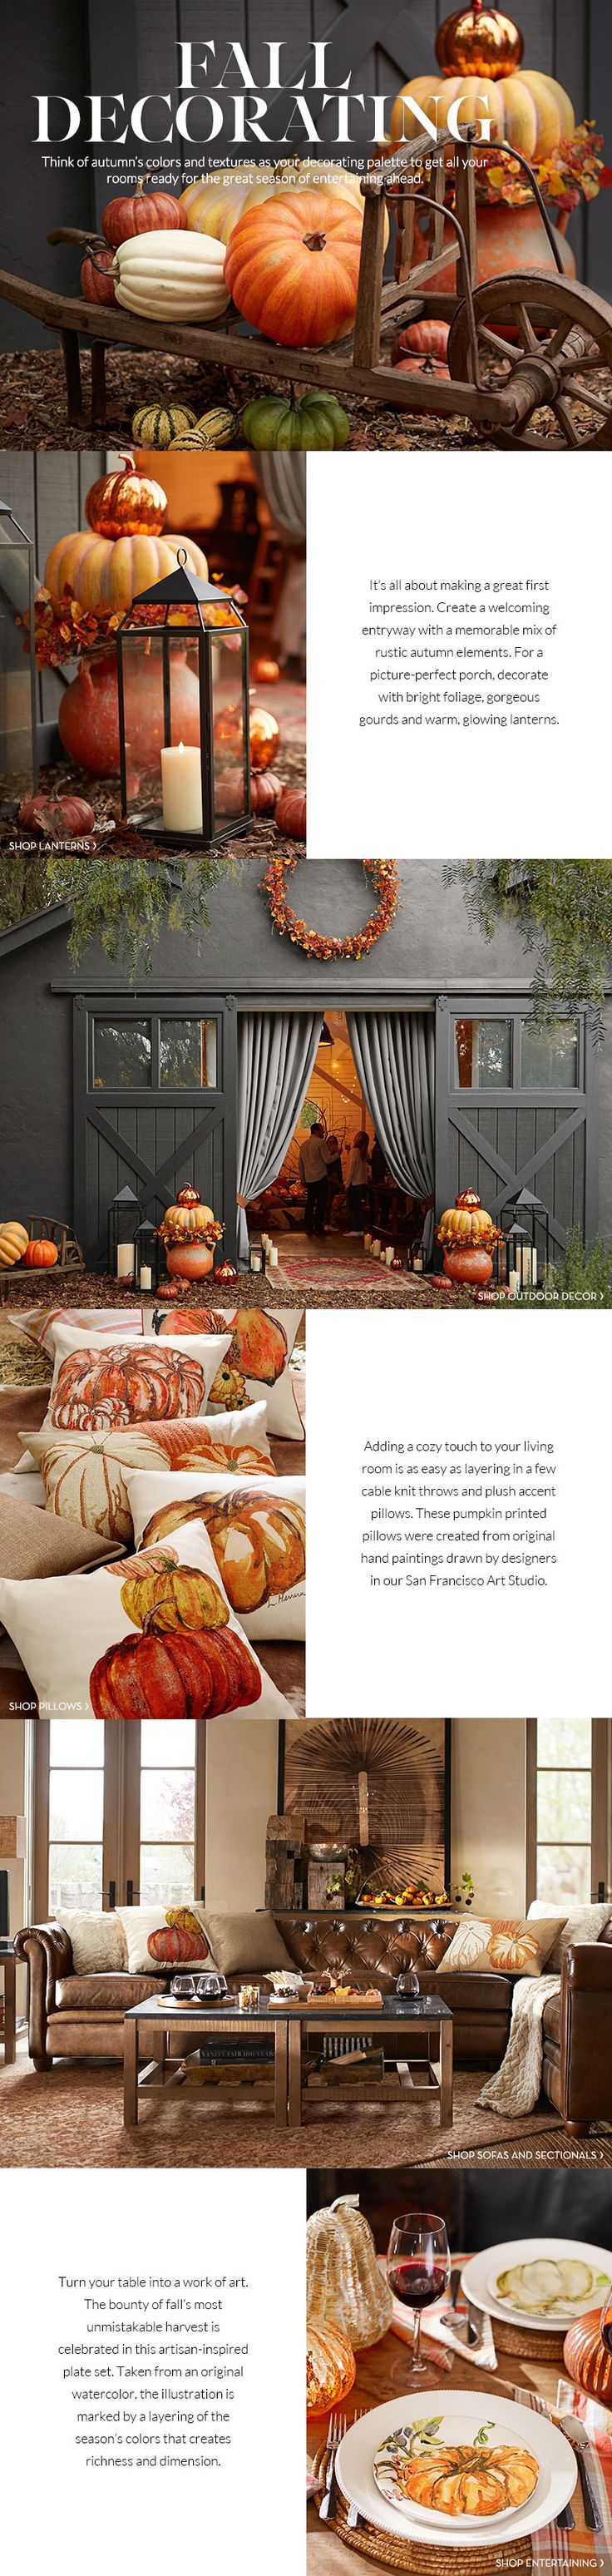 Fall Decorating | Pottery Barn